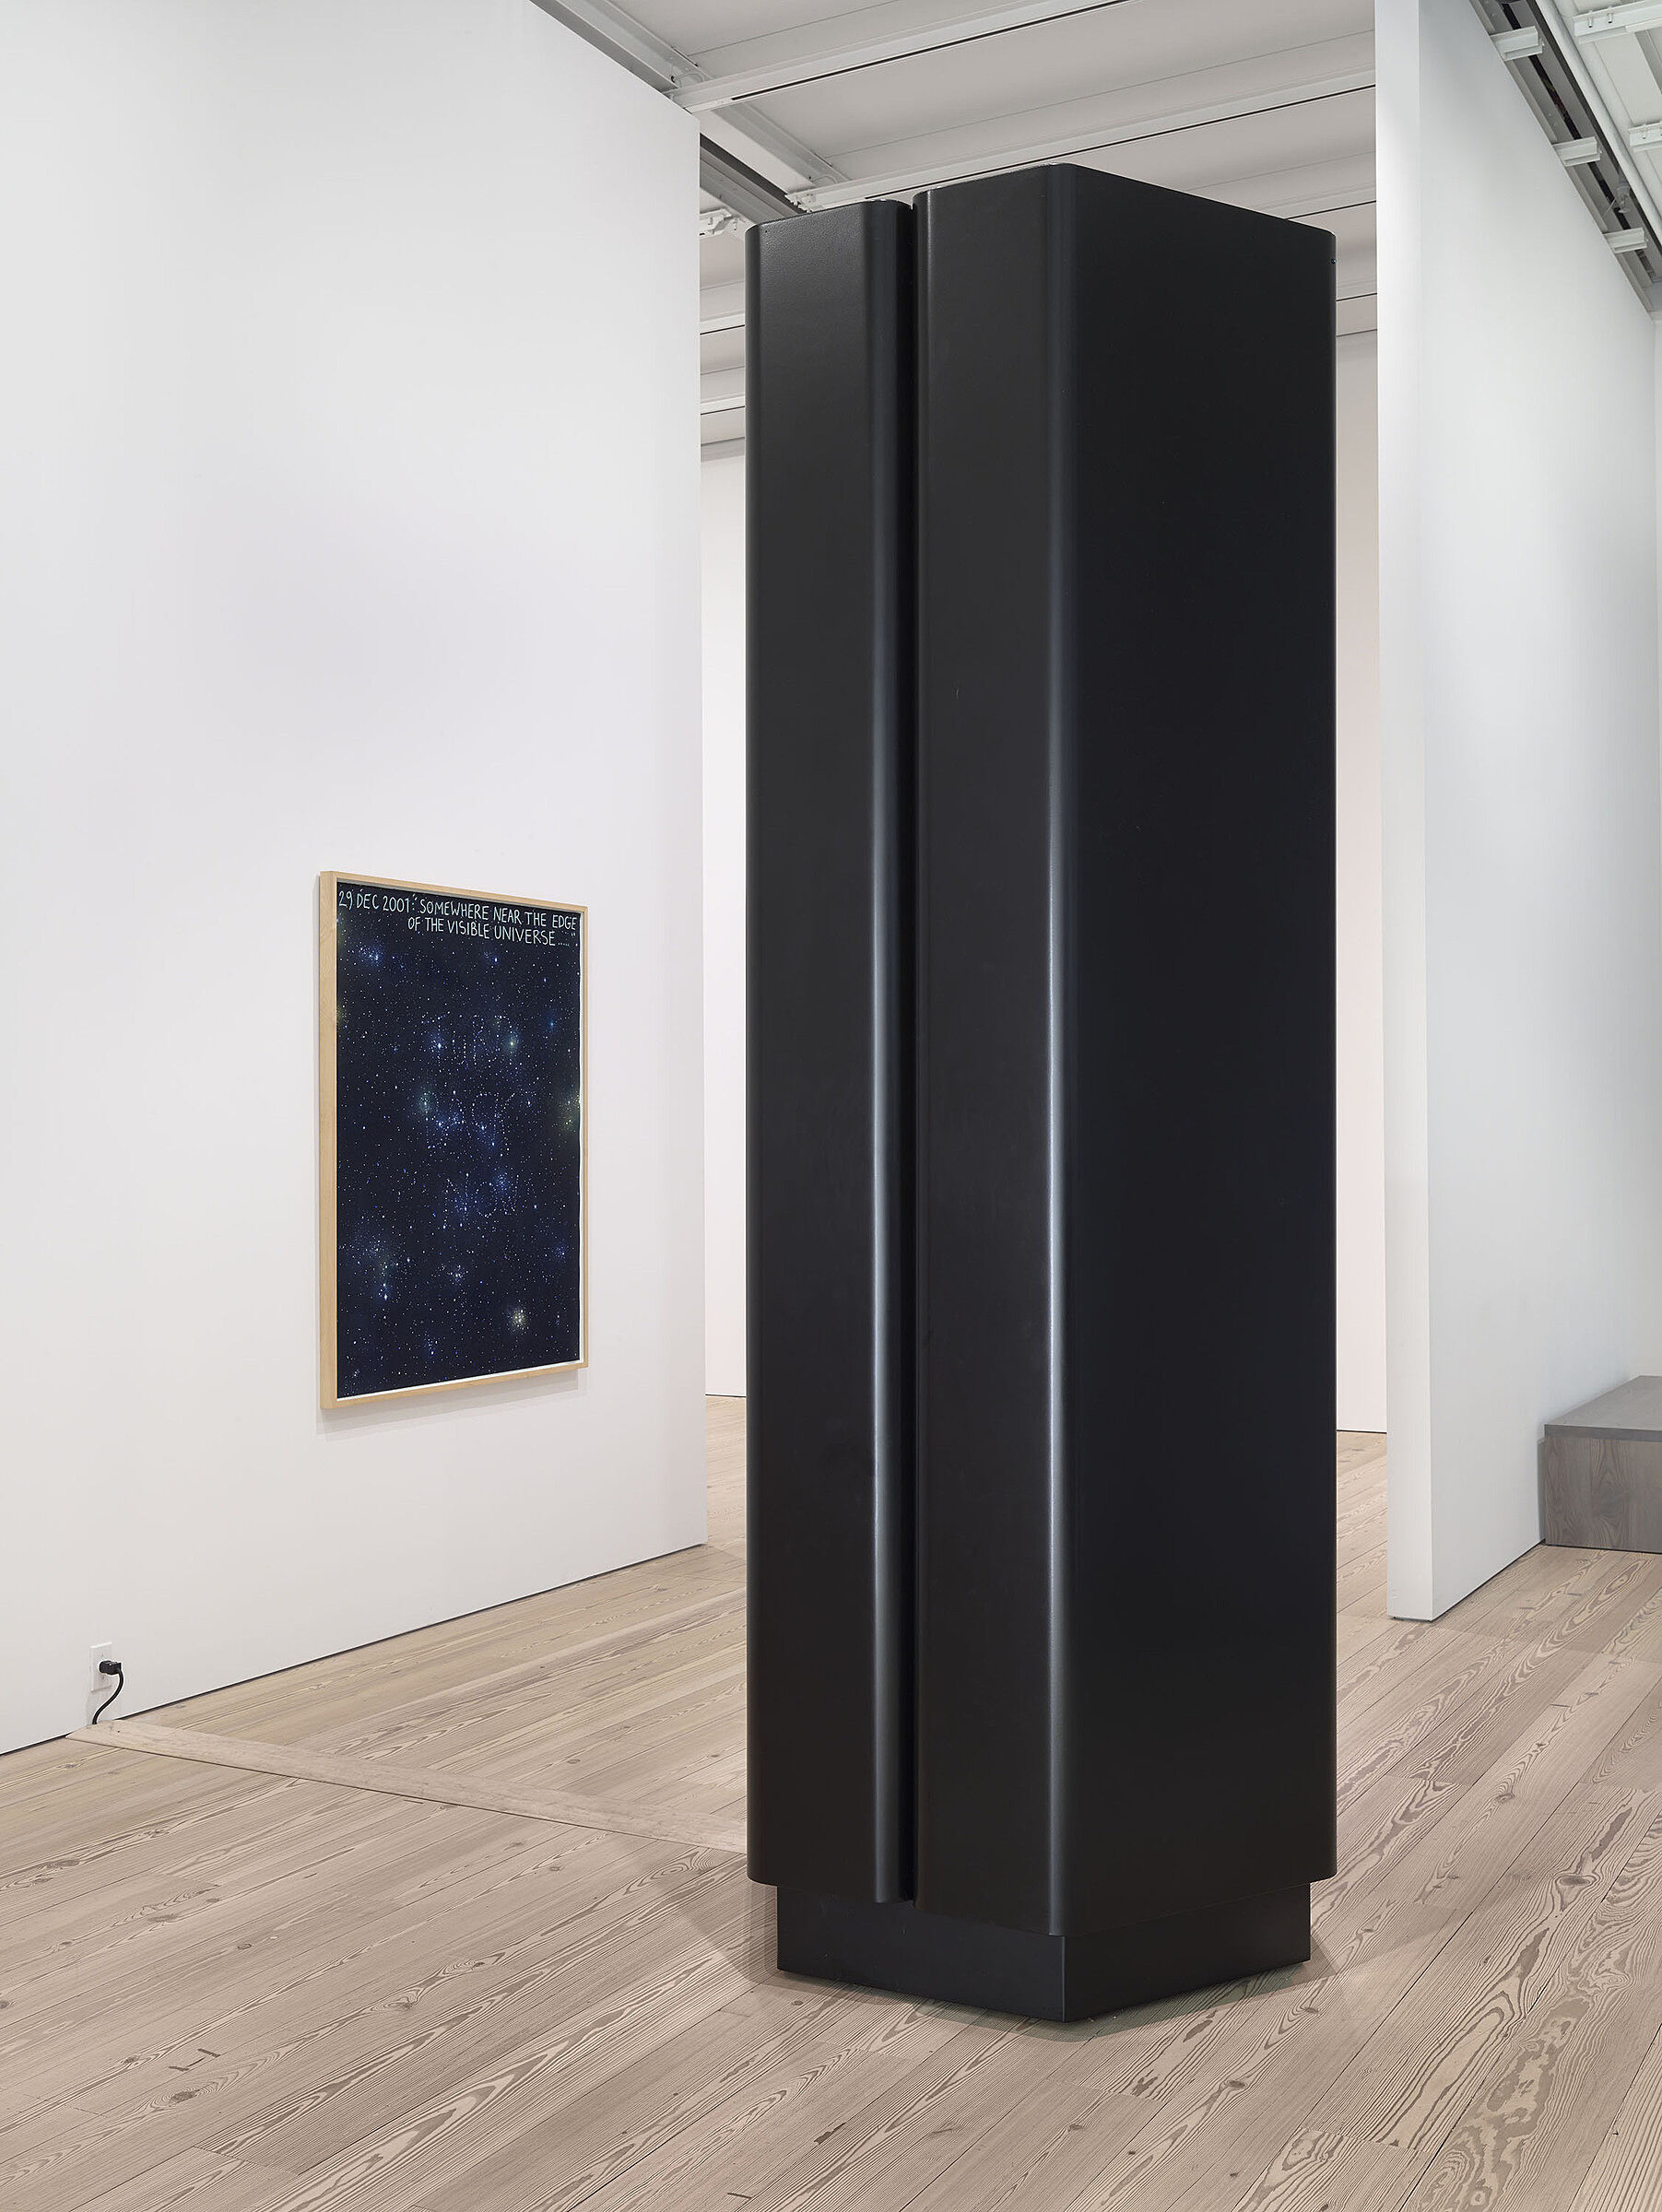 A black sculpture in the shape of a column on the gallery floor.